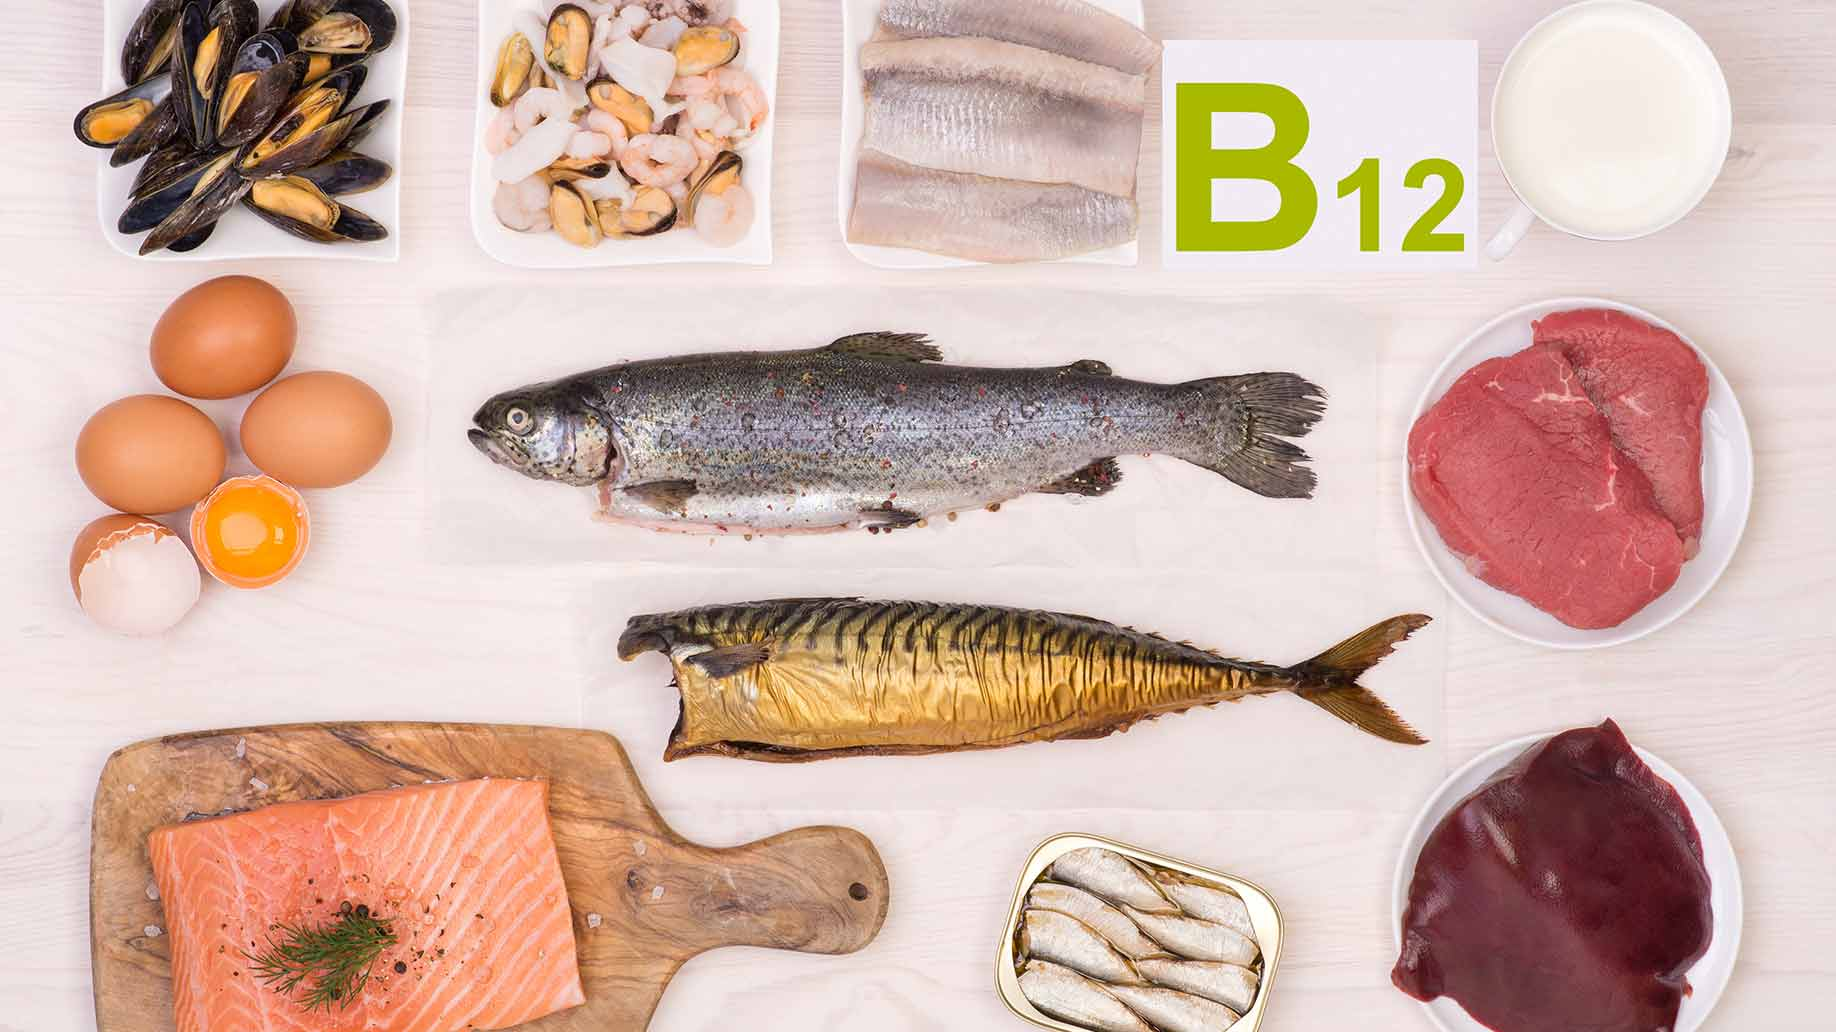 vitamin b12 fish salmon eggs liver mussels memory loss natural remedies